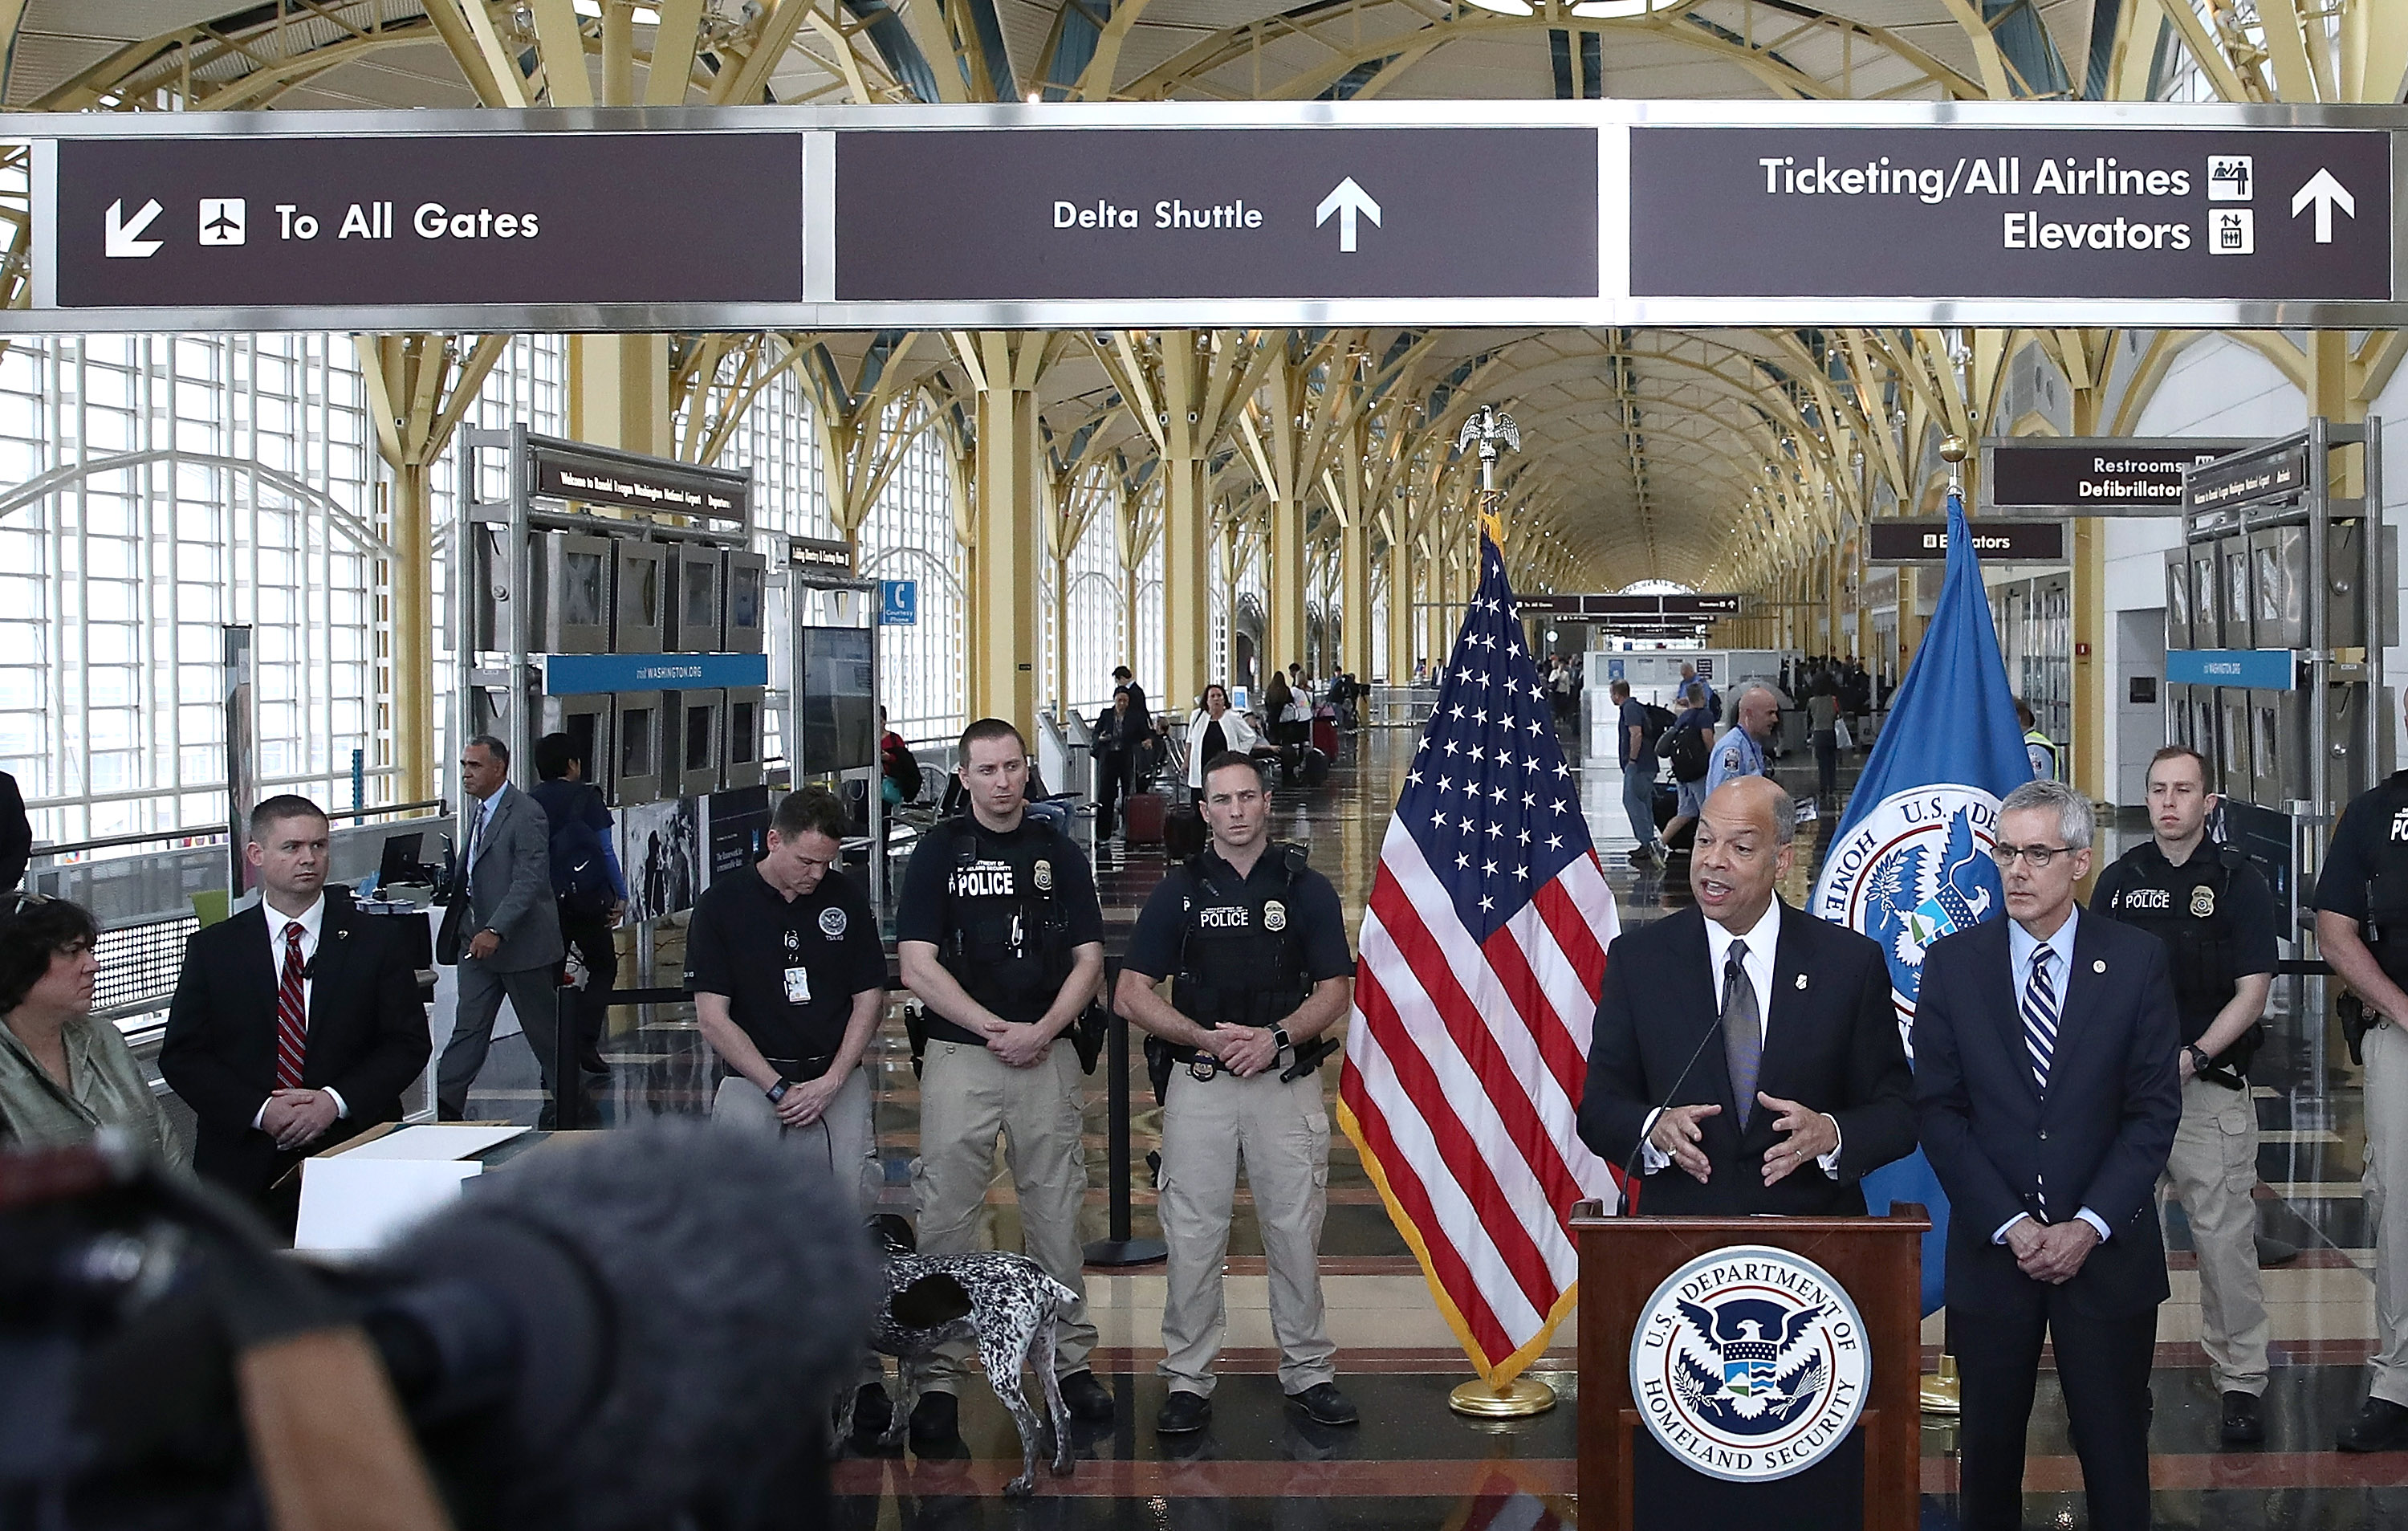 U.S. Homeland Security Secretary Jeh Johnson (L) delivers remarks at Ronald Reagan National Airport May 13, 2016 in Arlington, Virginia. Johnson discussed upcoming summer travel, increased passenger volume, and the ongoing steps taken to protect the safety of travelers. Also pictured is Transportation Security Administration Administrator Peter Neffenger (R). Win McNamee—Getty Images